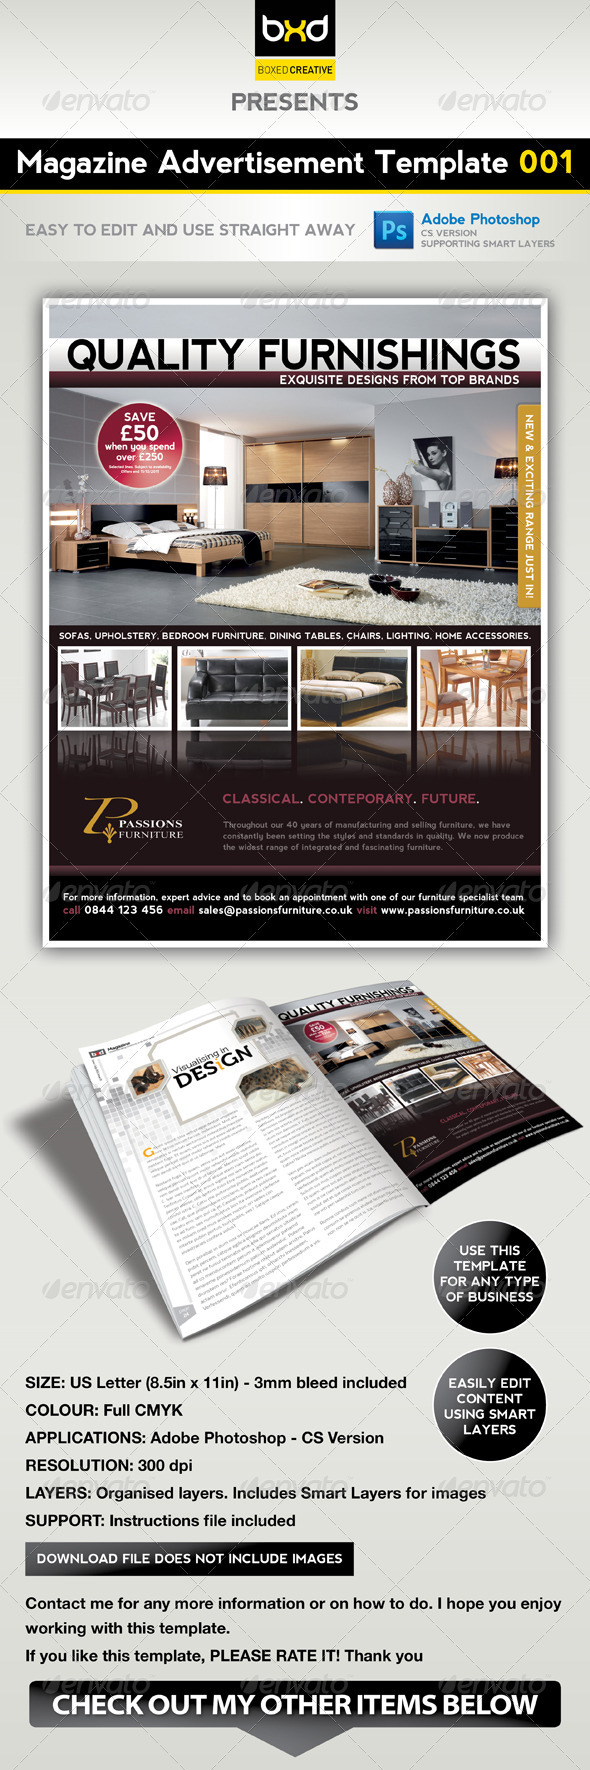 Magazine Advert Template 001 - Corporate Flyers